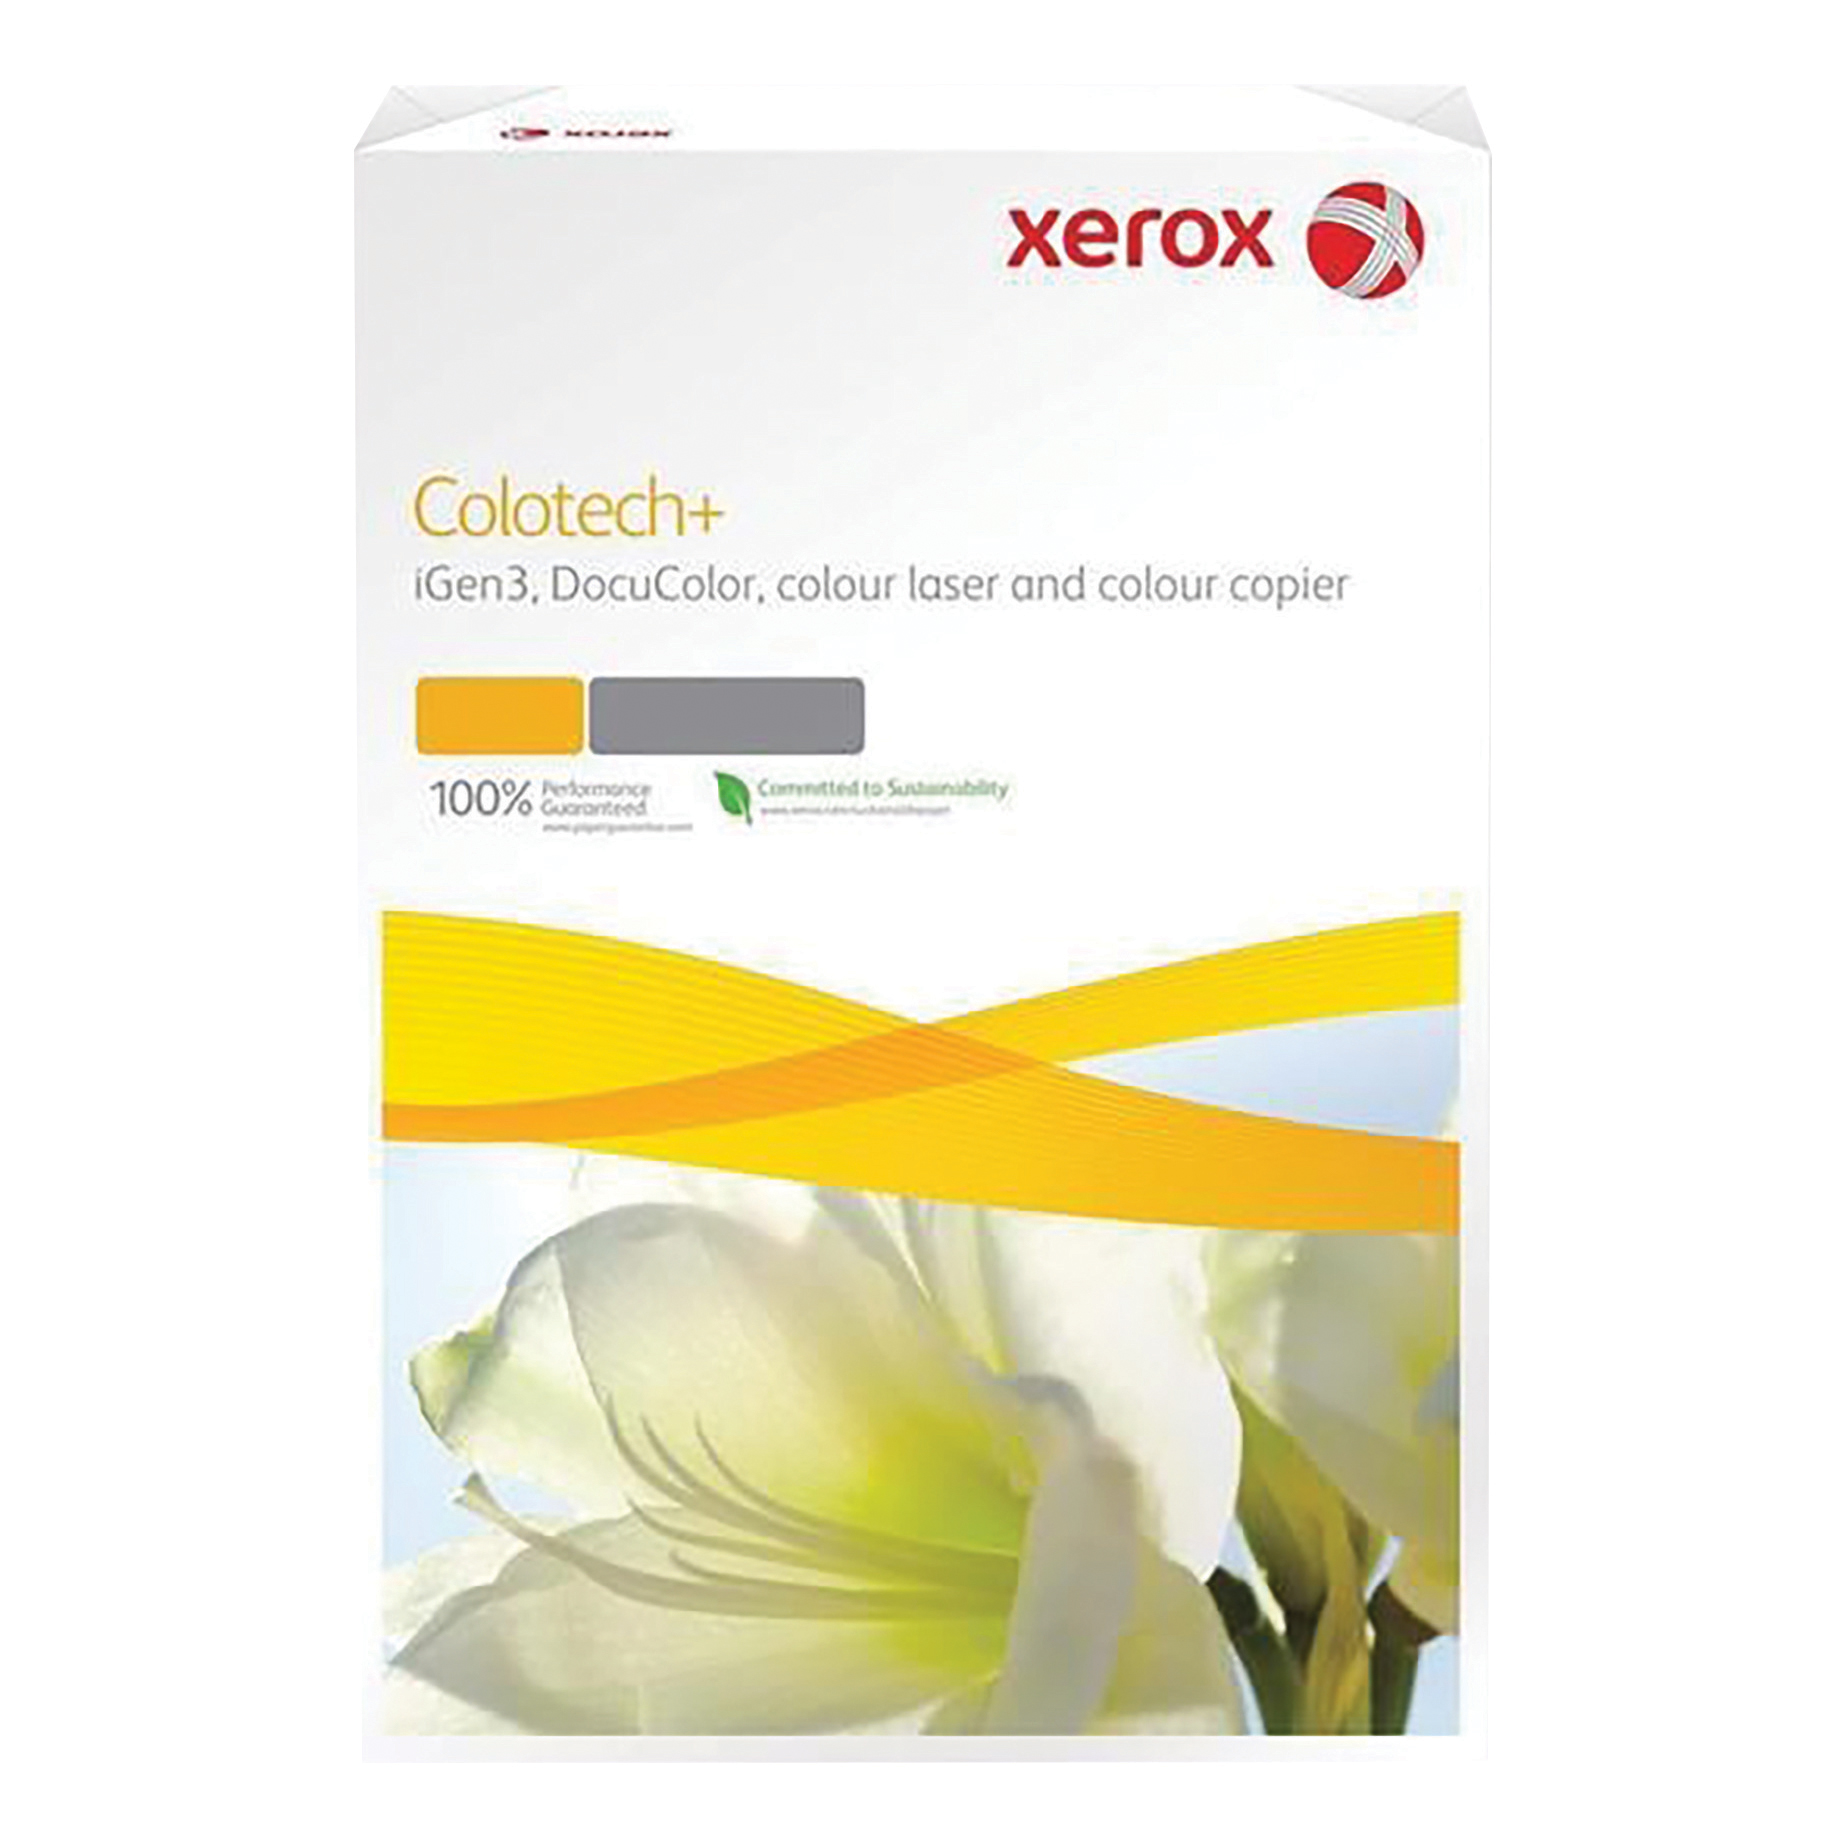 Xerox Colotech+ Digital Colour Paper Premium Ream-Wrapped 100gsm A3 White Ref 63742 500 Sheets